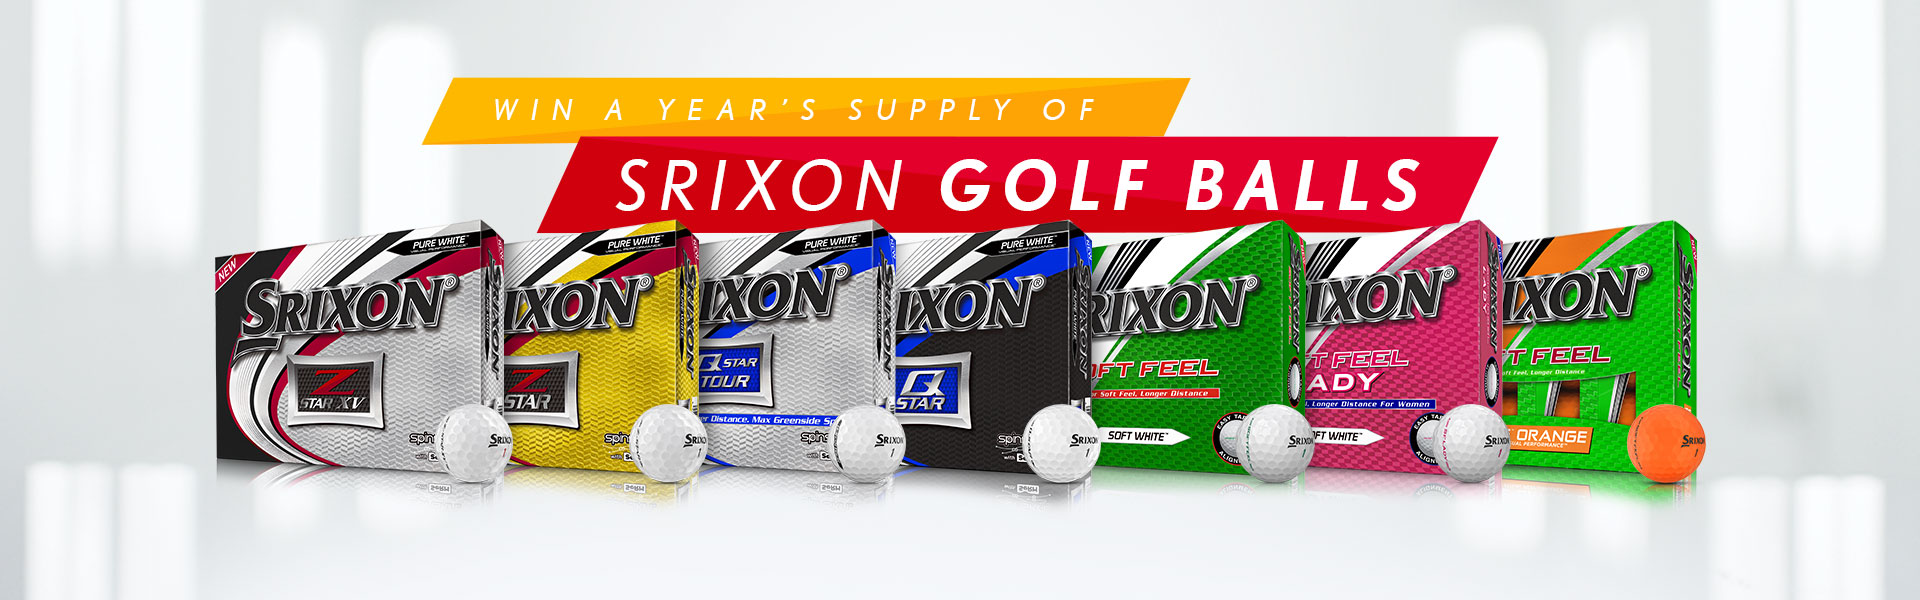 Win A Years Supply of Srixon Golf Balls